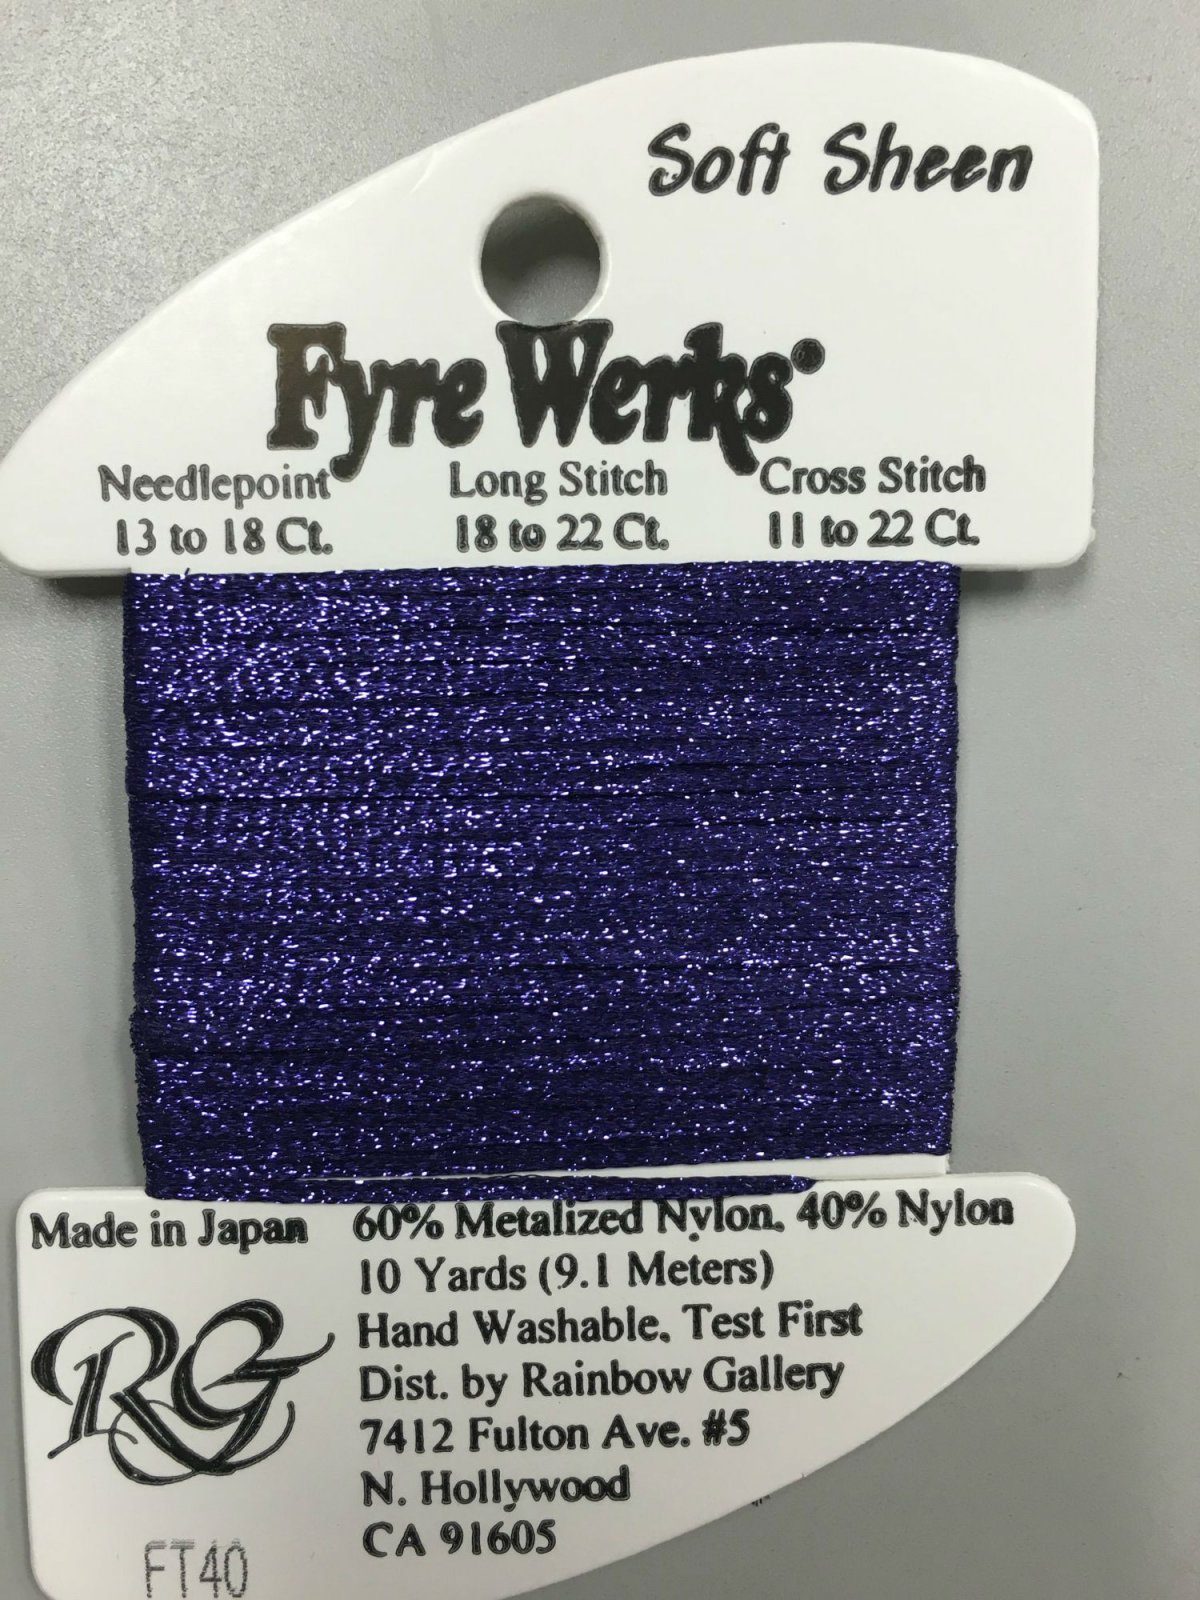 Fyre Werks Soft Sheen FT40